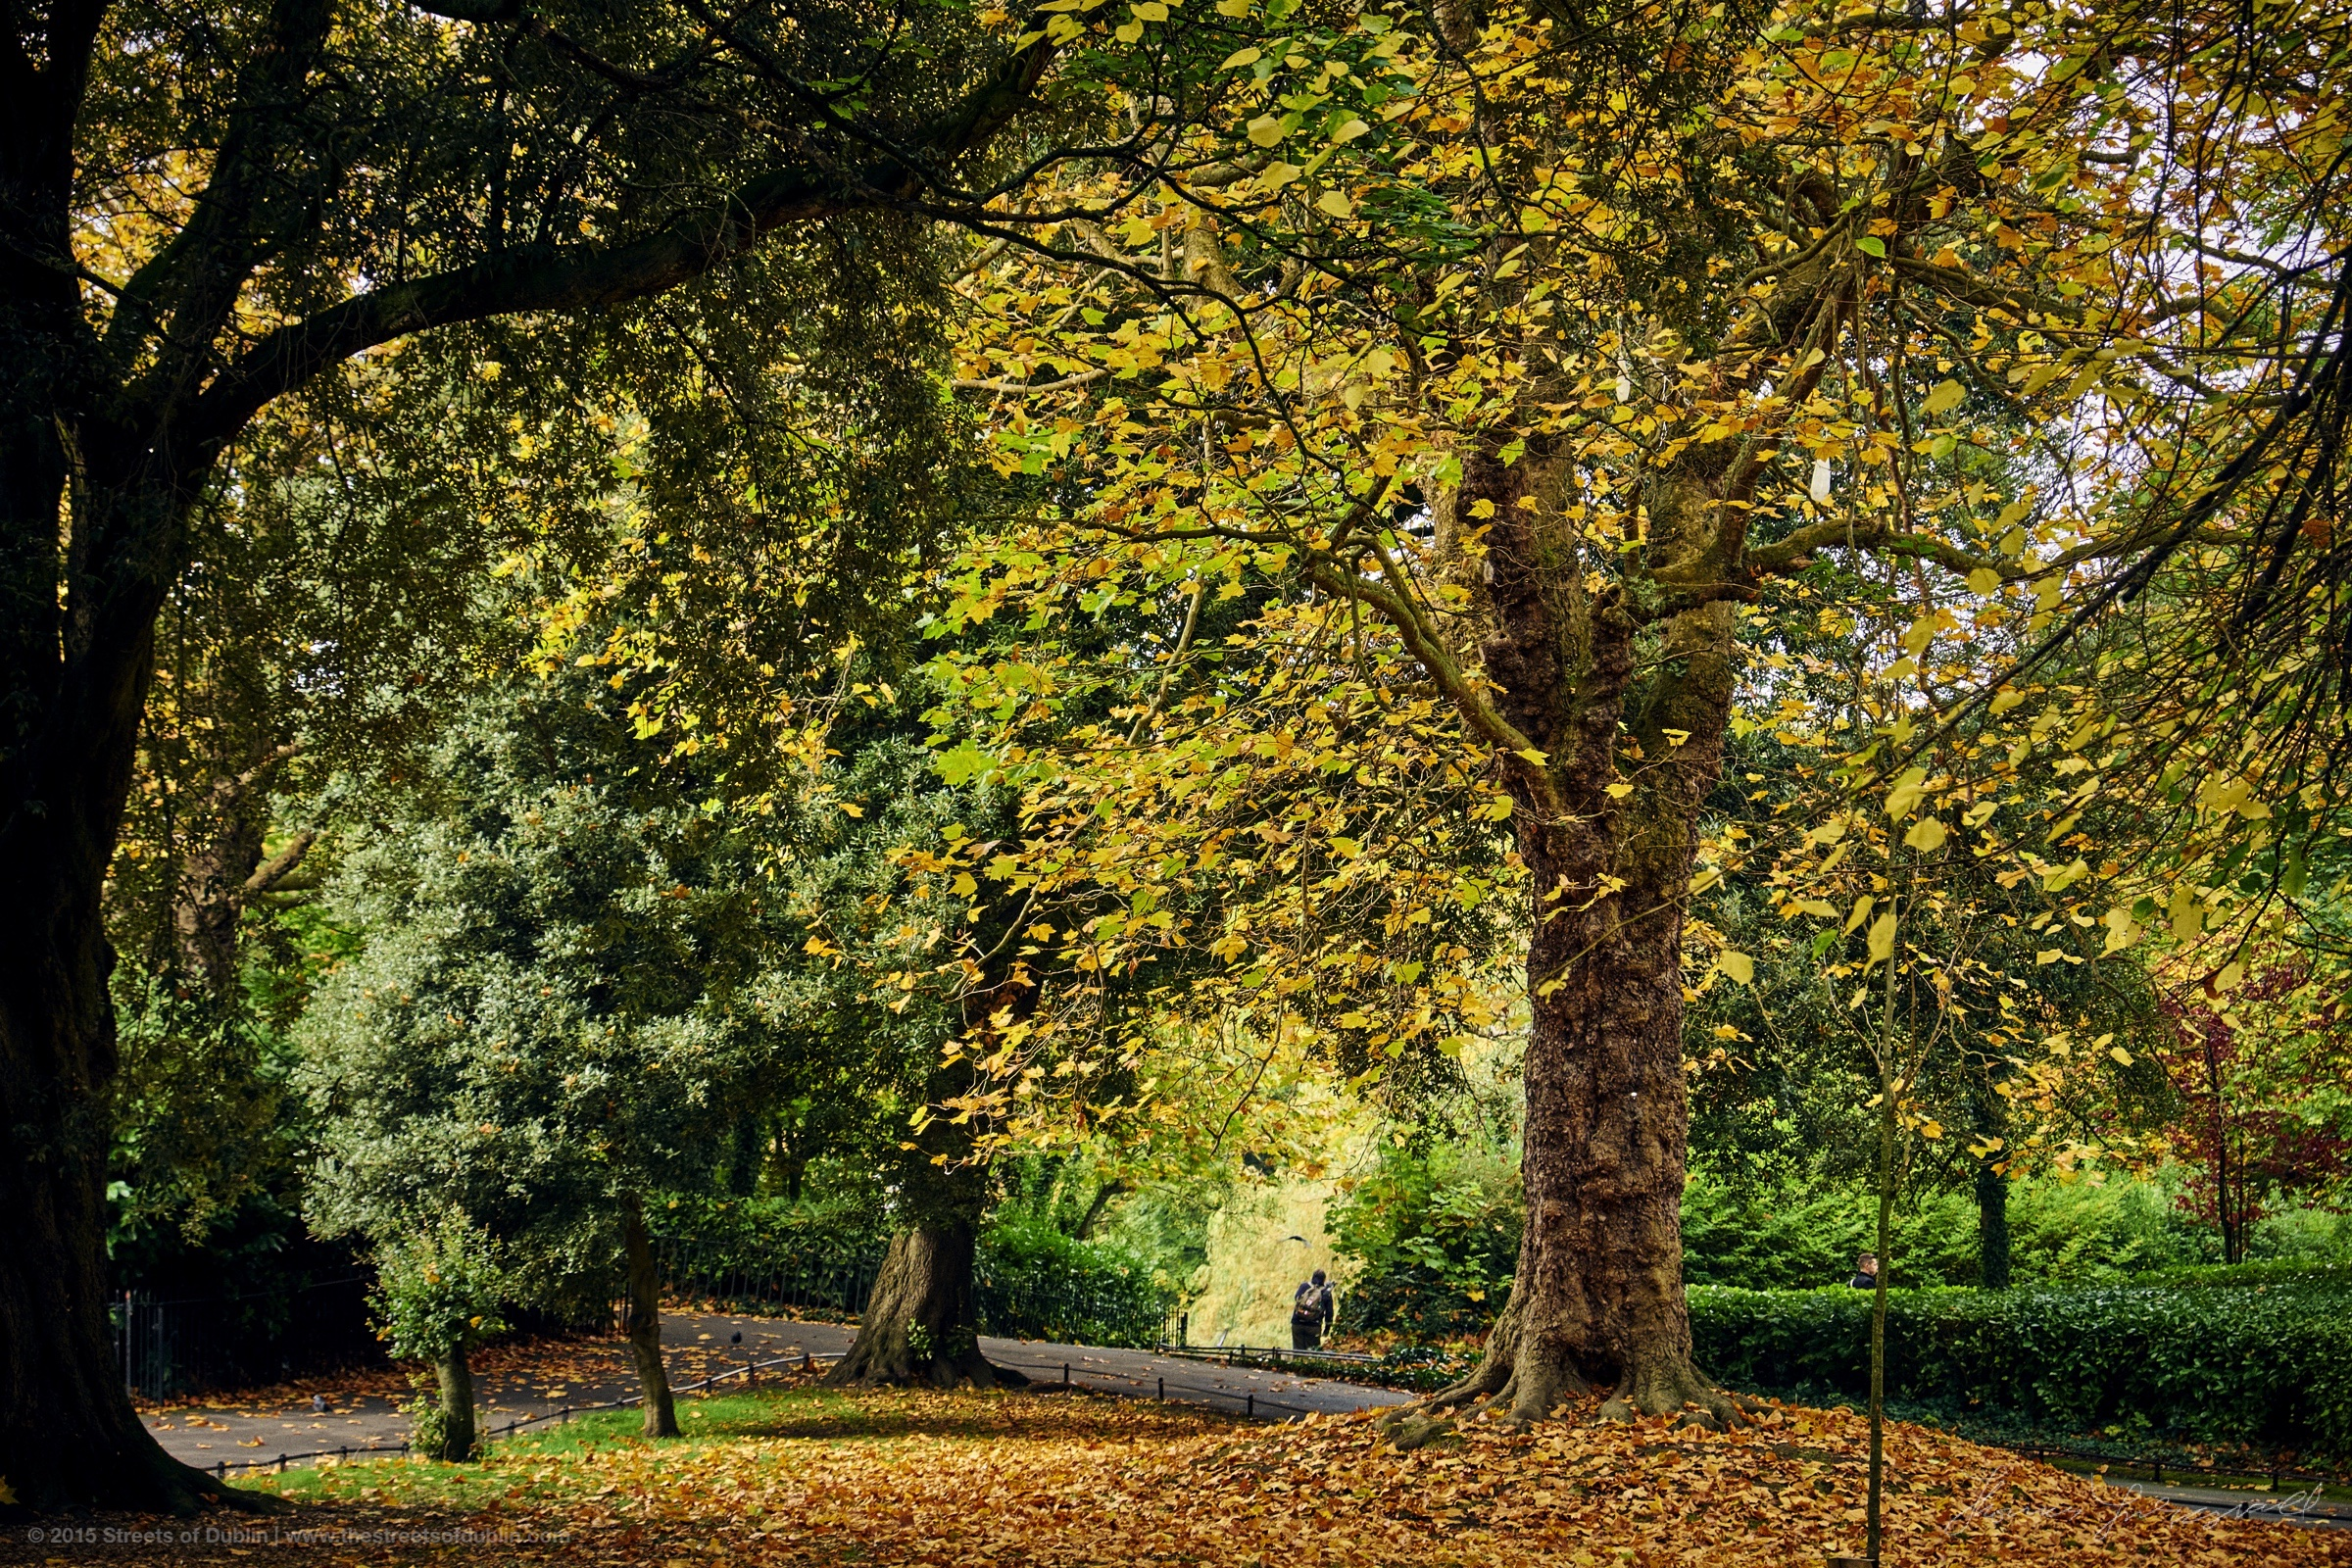 Stephens-Green-Trees.jpg